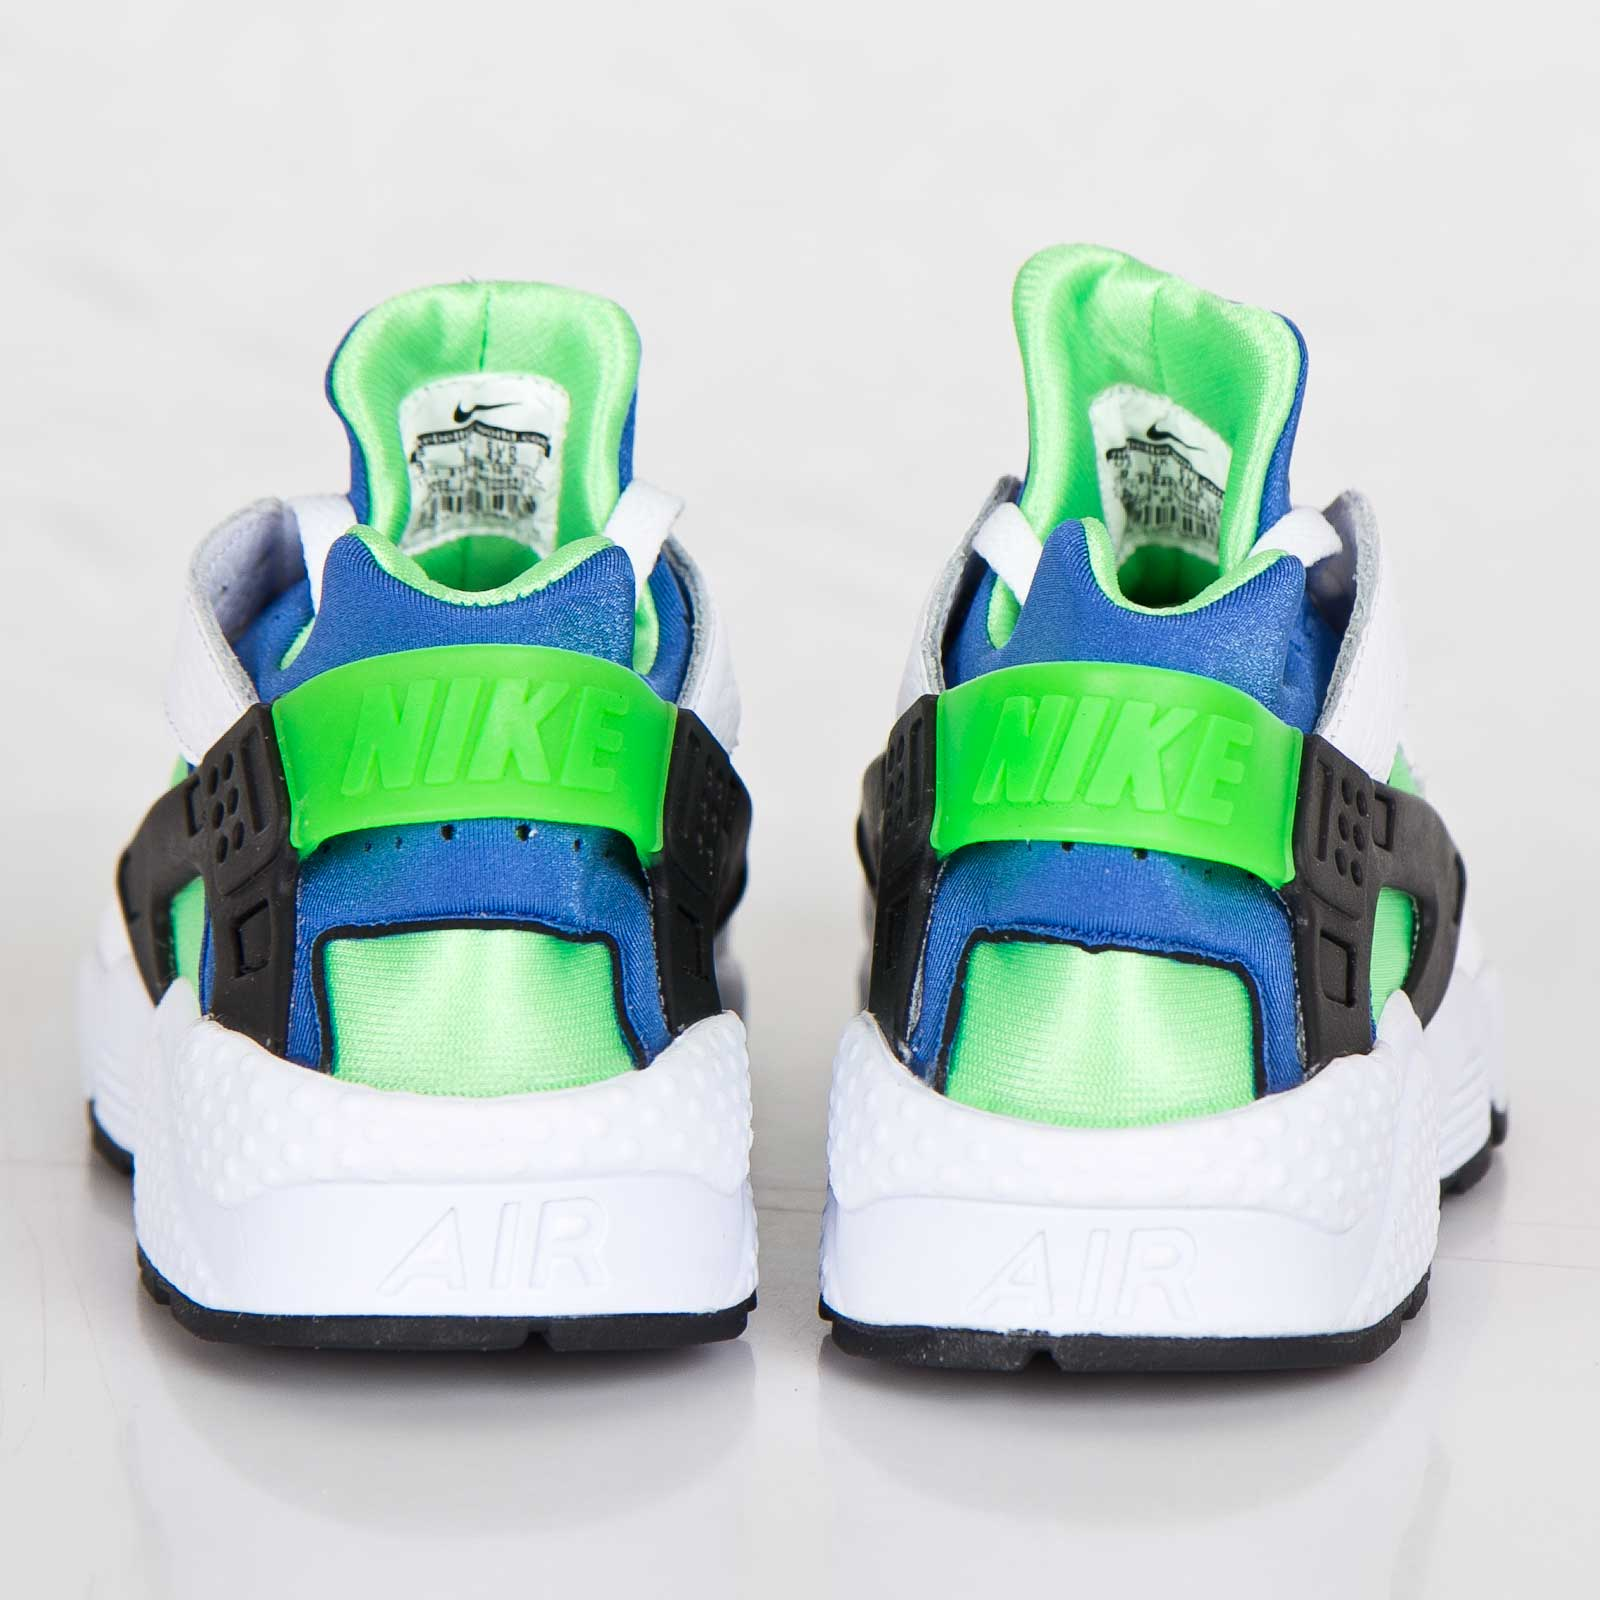 new style c7364 3eb13 ... discount code for nike air huarache nike air huarache nike air huarache  ab98a c54f2 ...